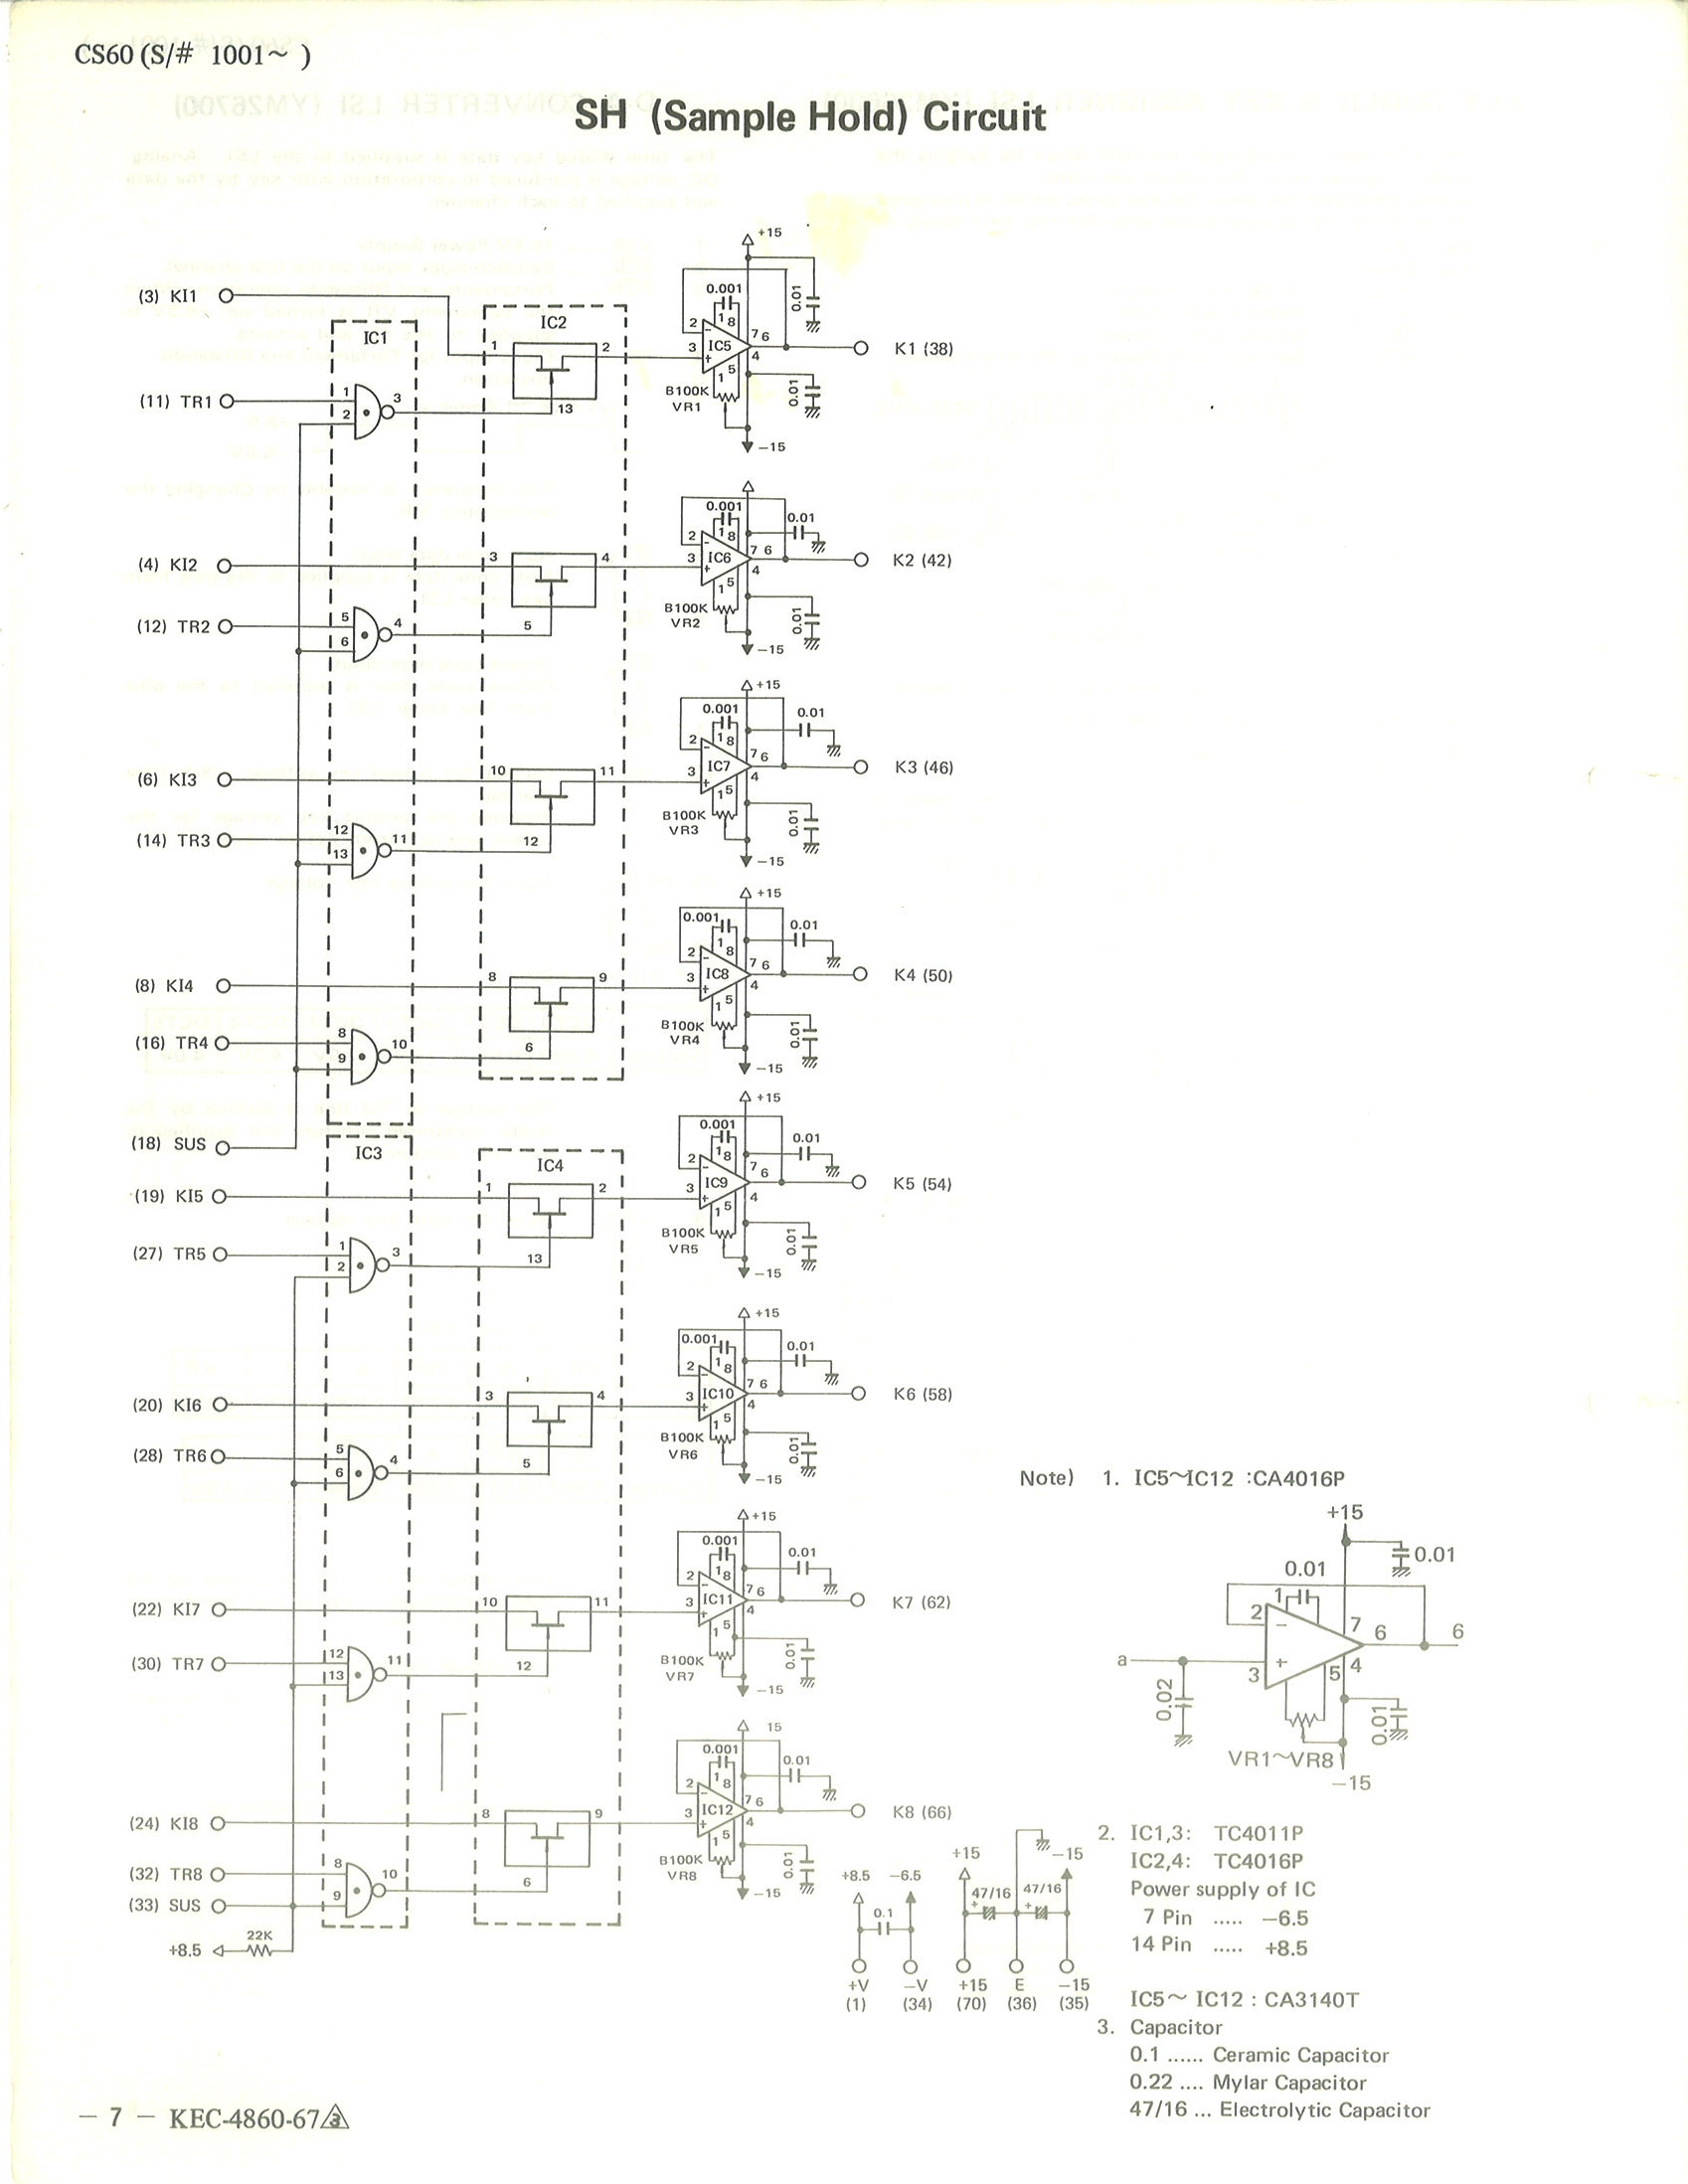 Tr10 Wiring Diagram Schematics Tr4 Yamaha Cs 60 Service Manual Gfci Outlets In Series